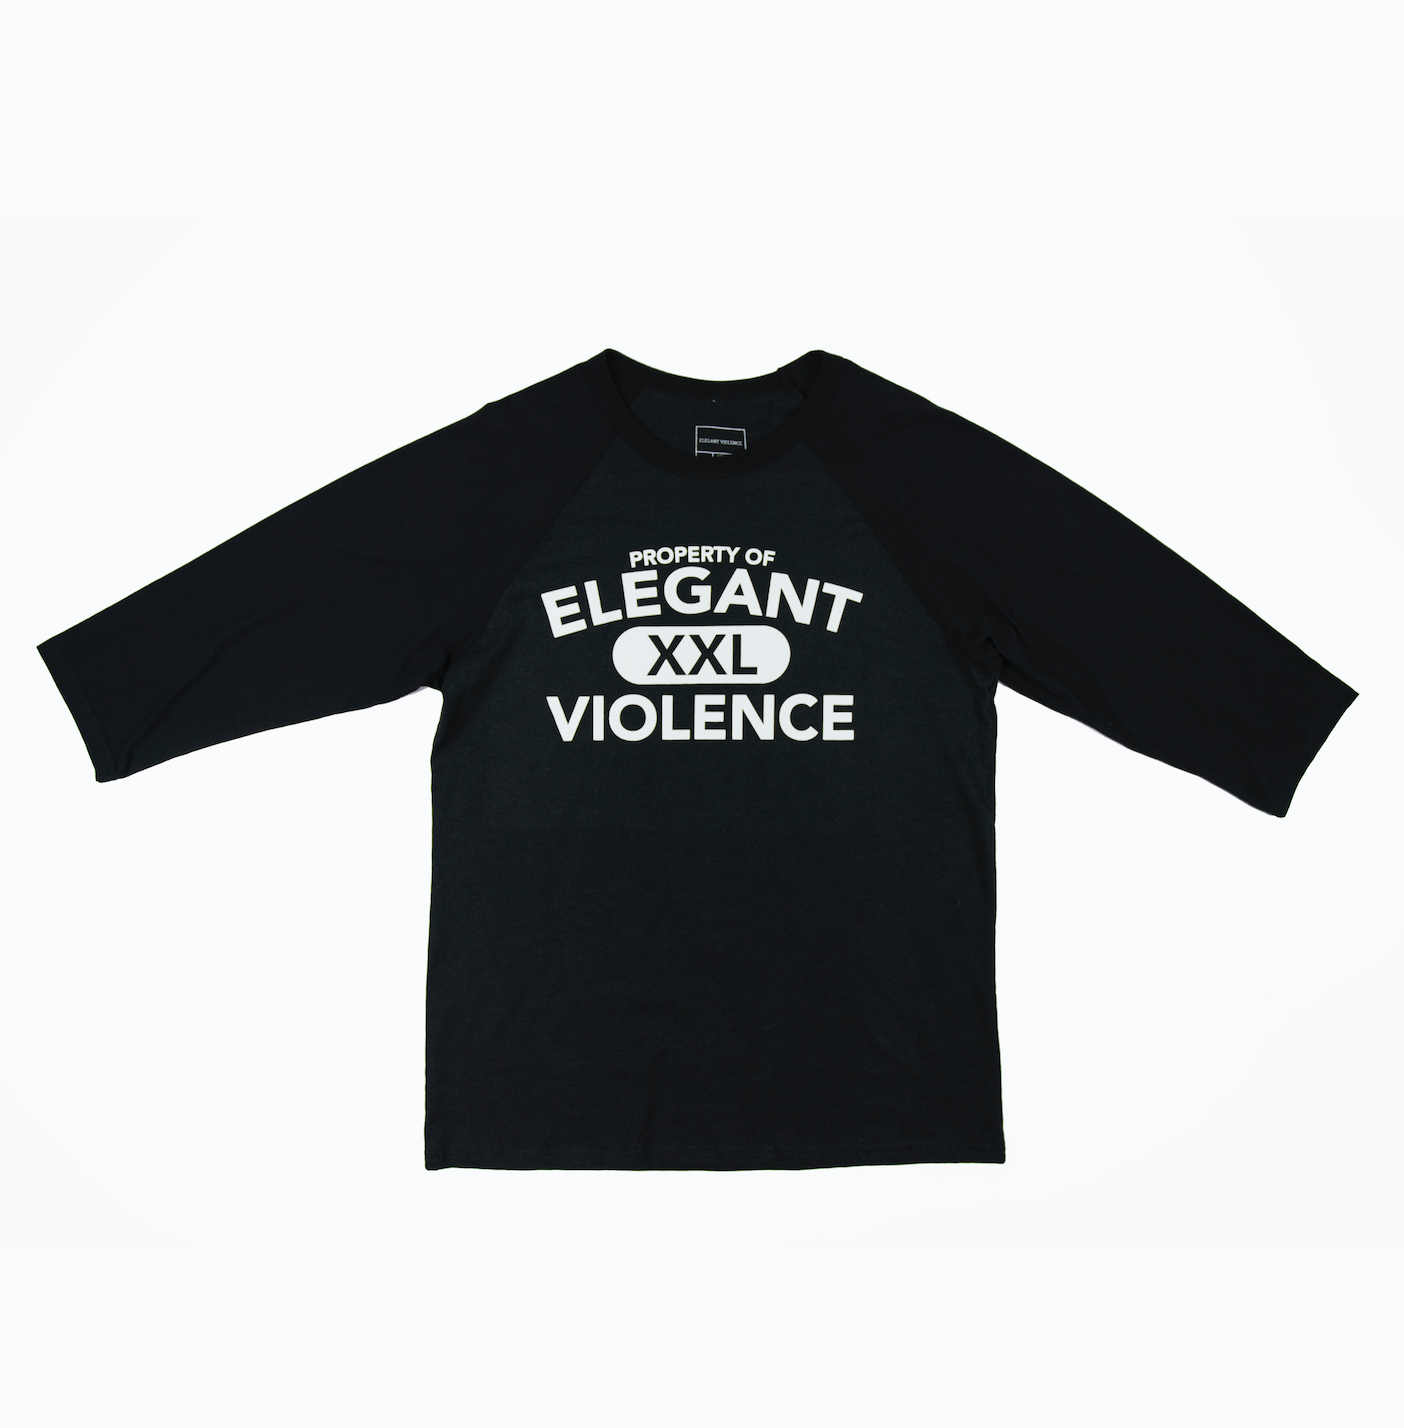 3/4 Property Tee - Elegant Violence Rugby Lifestyle